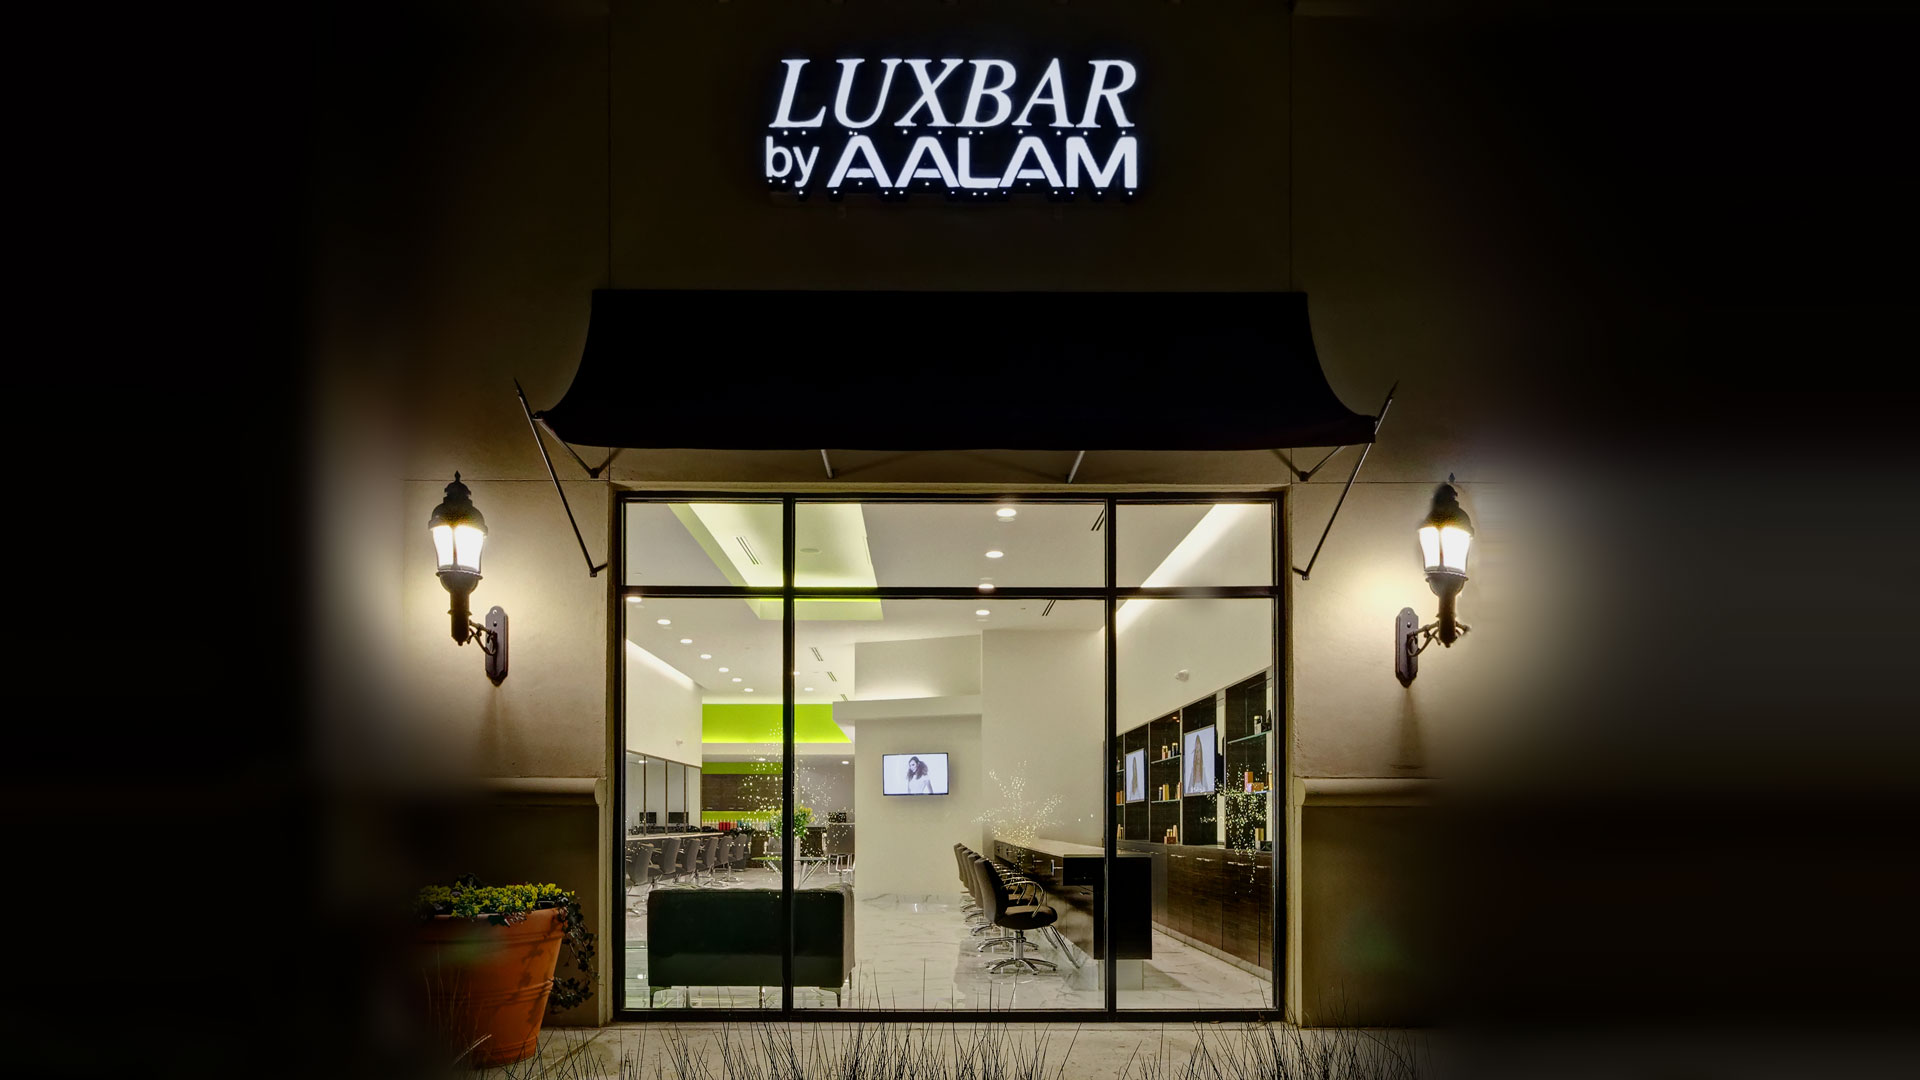 Luxbar plano frisco blow dry bar makeup bar in north for Aalam salon dallas